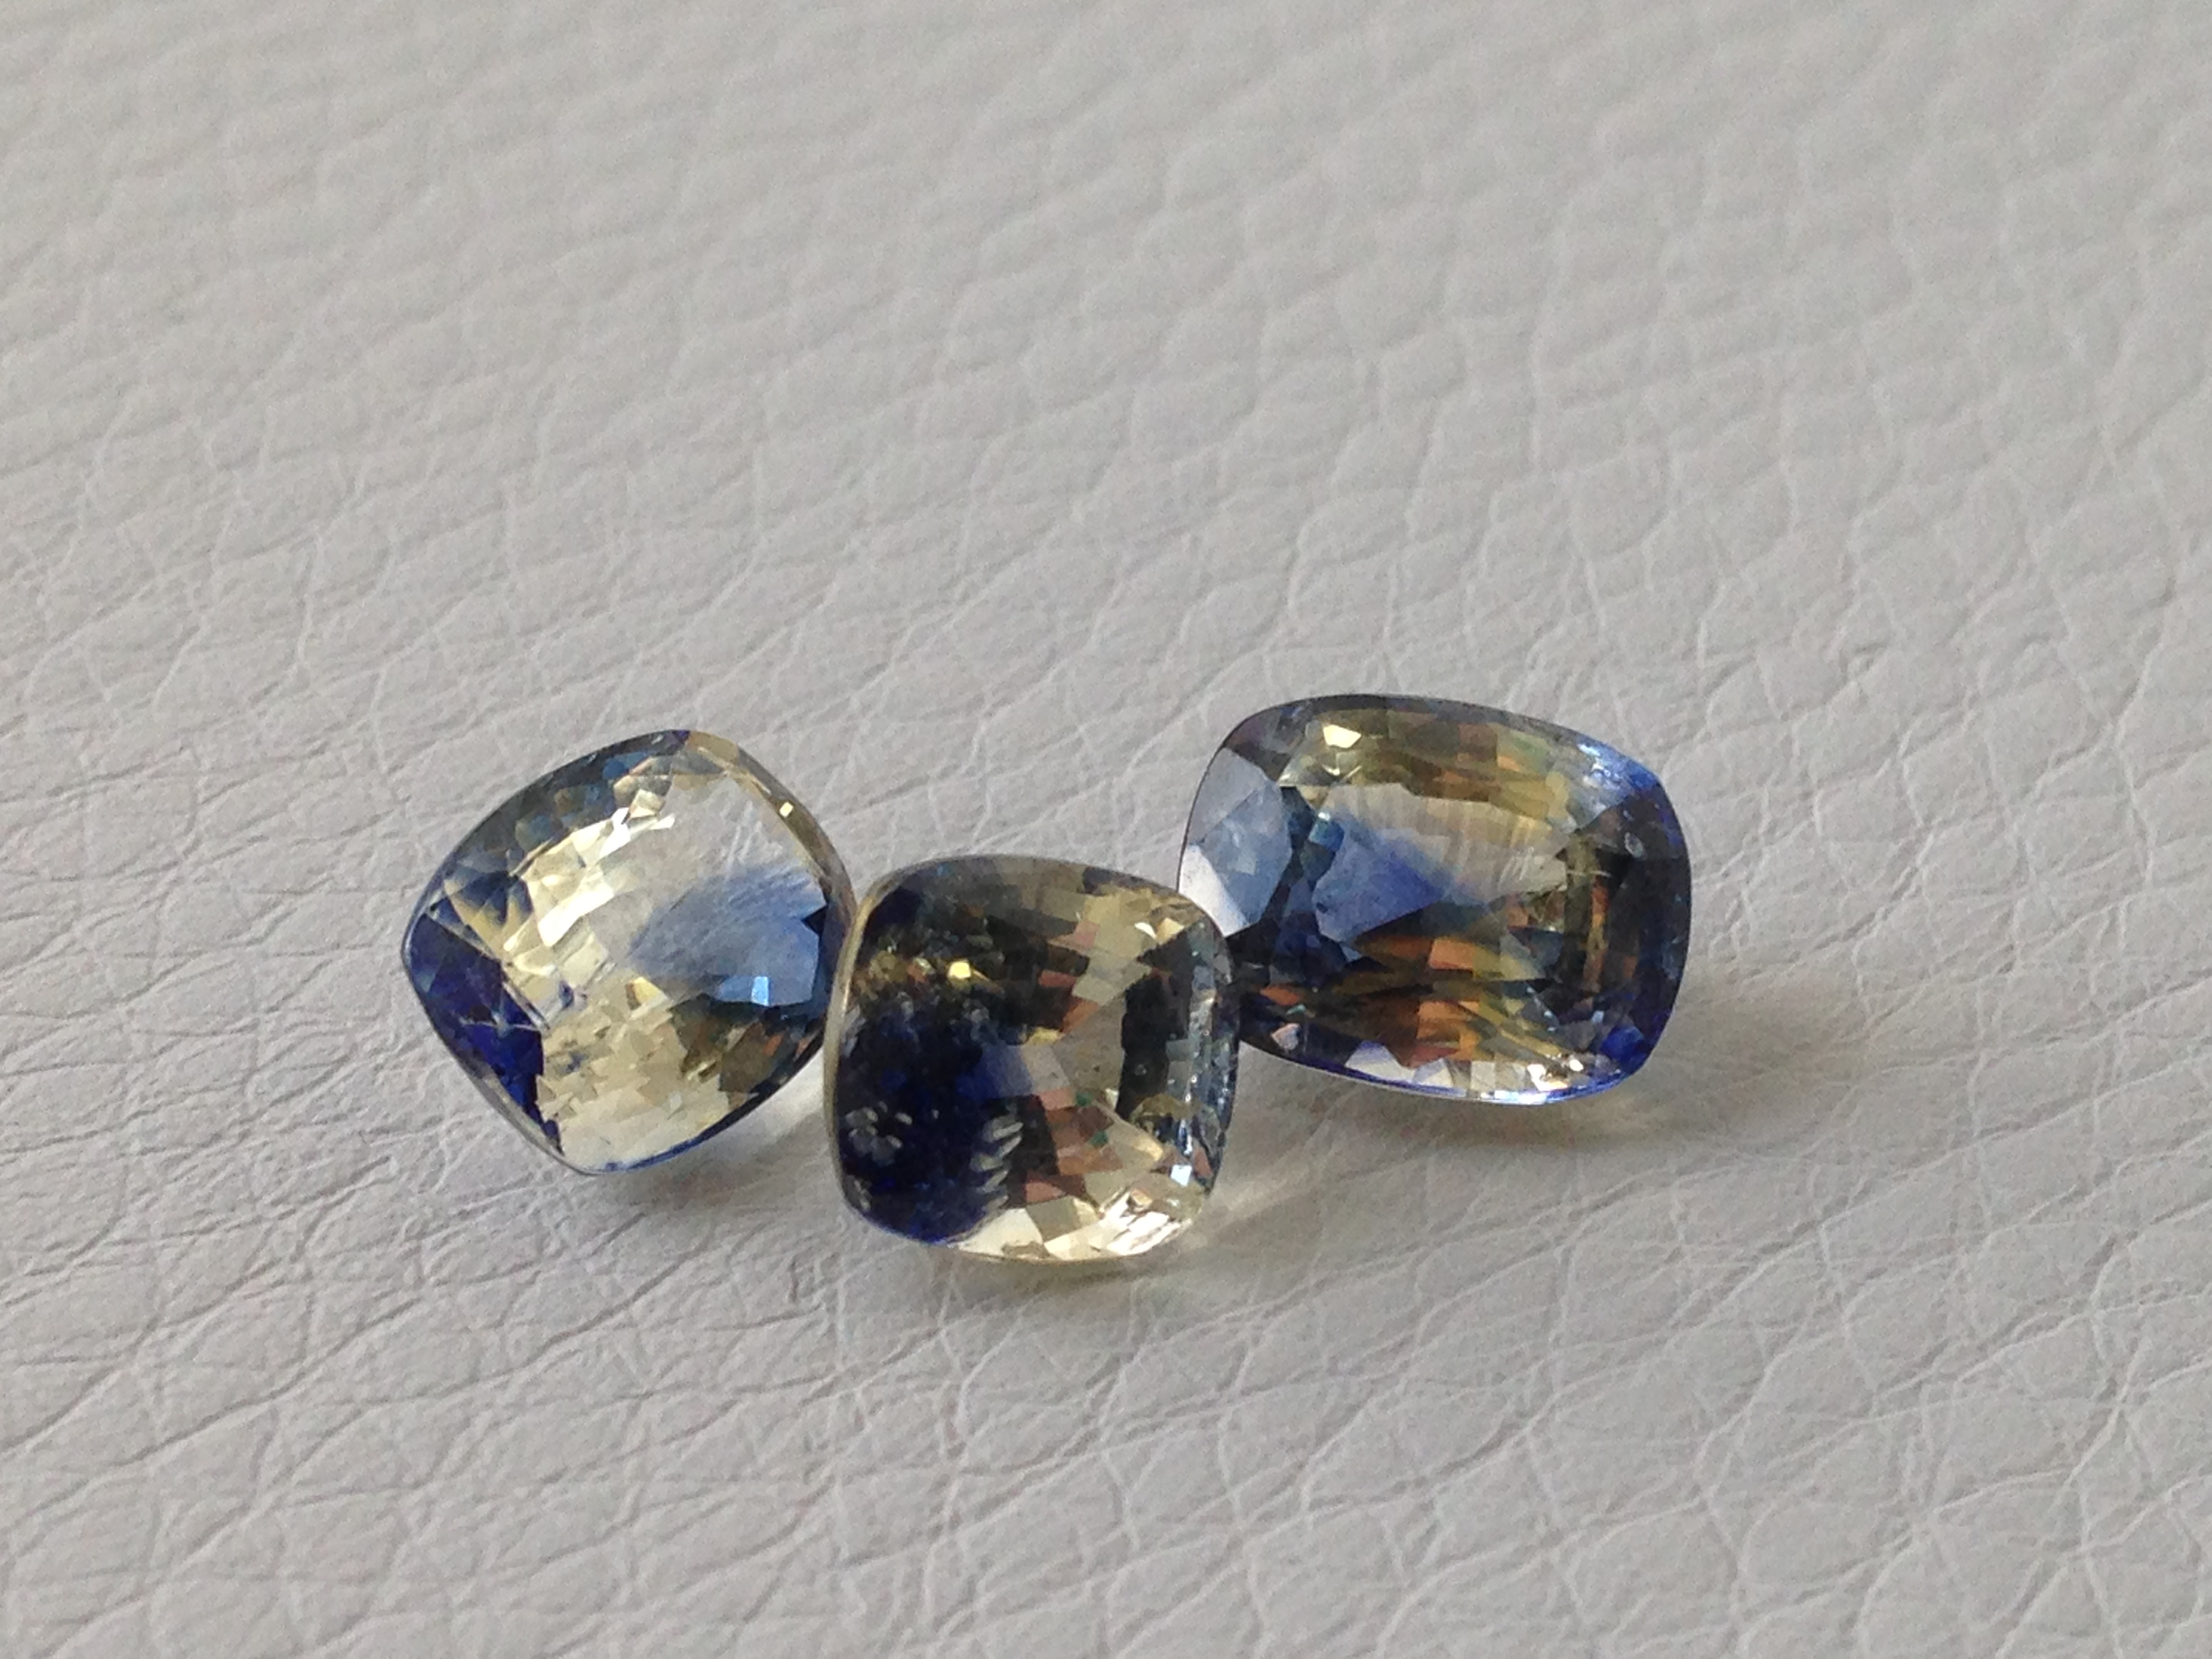 ring wide blue sapphire diamond multi band inc product white categories tags gemstone jupiter gold jewelry sku color